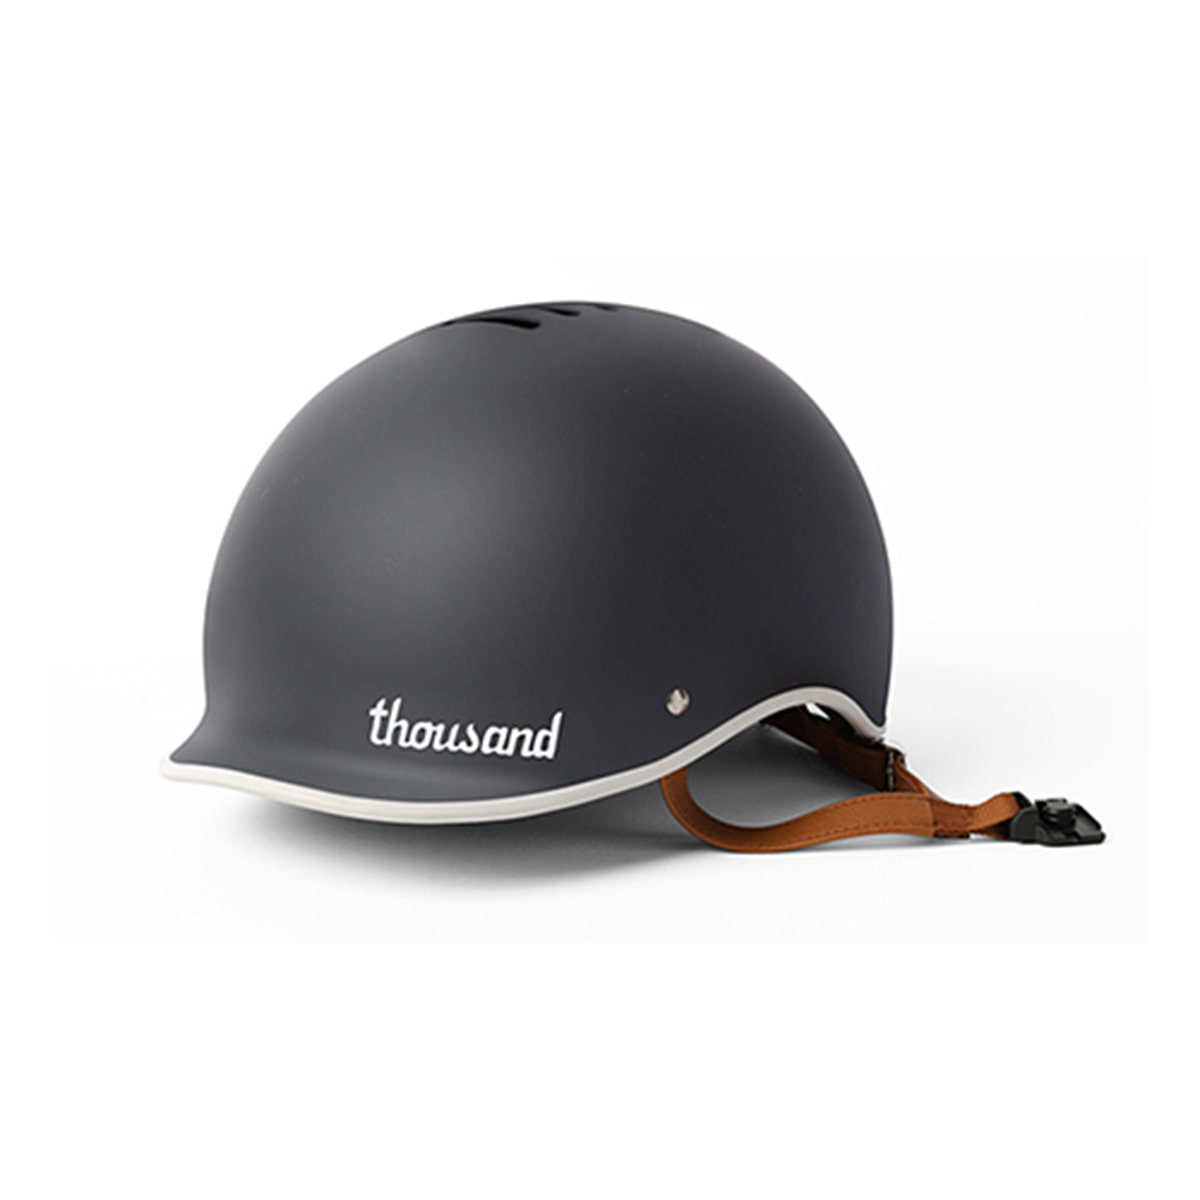 Thousand - HERITAGE COLLECTION Carbon Black